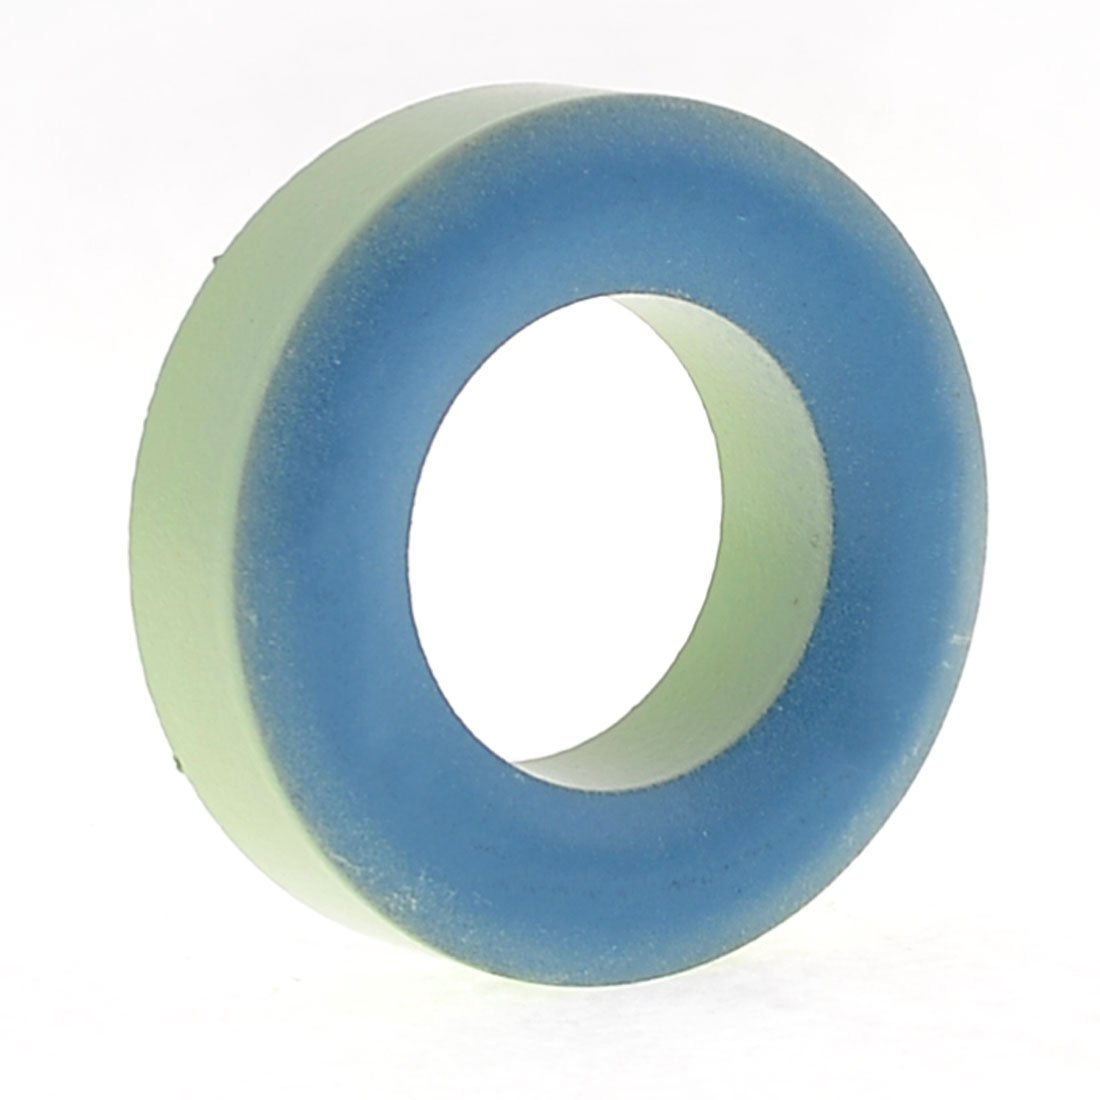 Aexit 39x21x11mm Pale Passive Components Green Blue Ring Power Ferrite Toroid Ferrites Core AT150-52